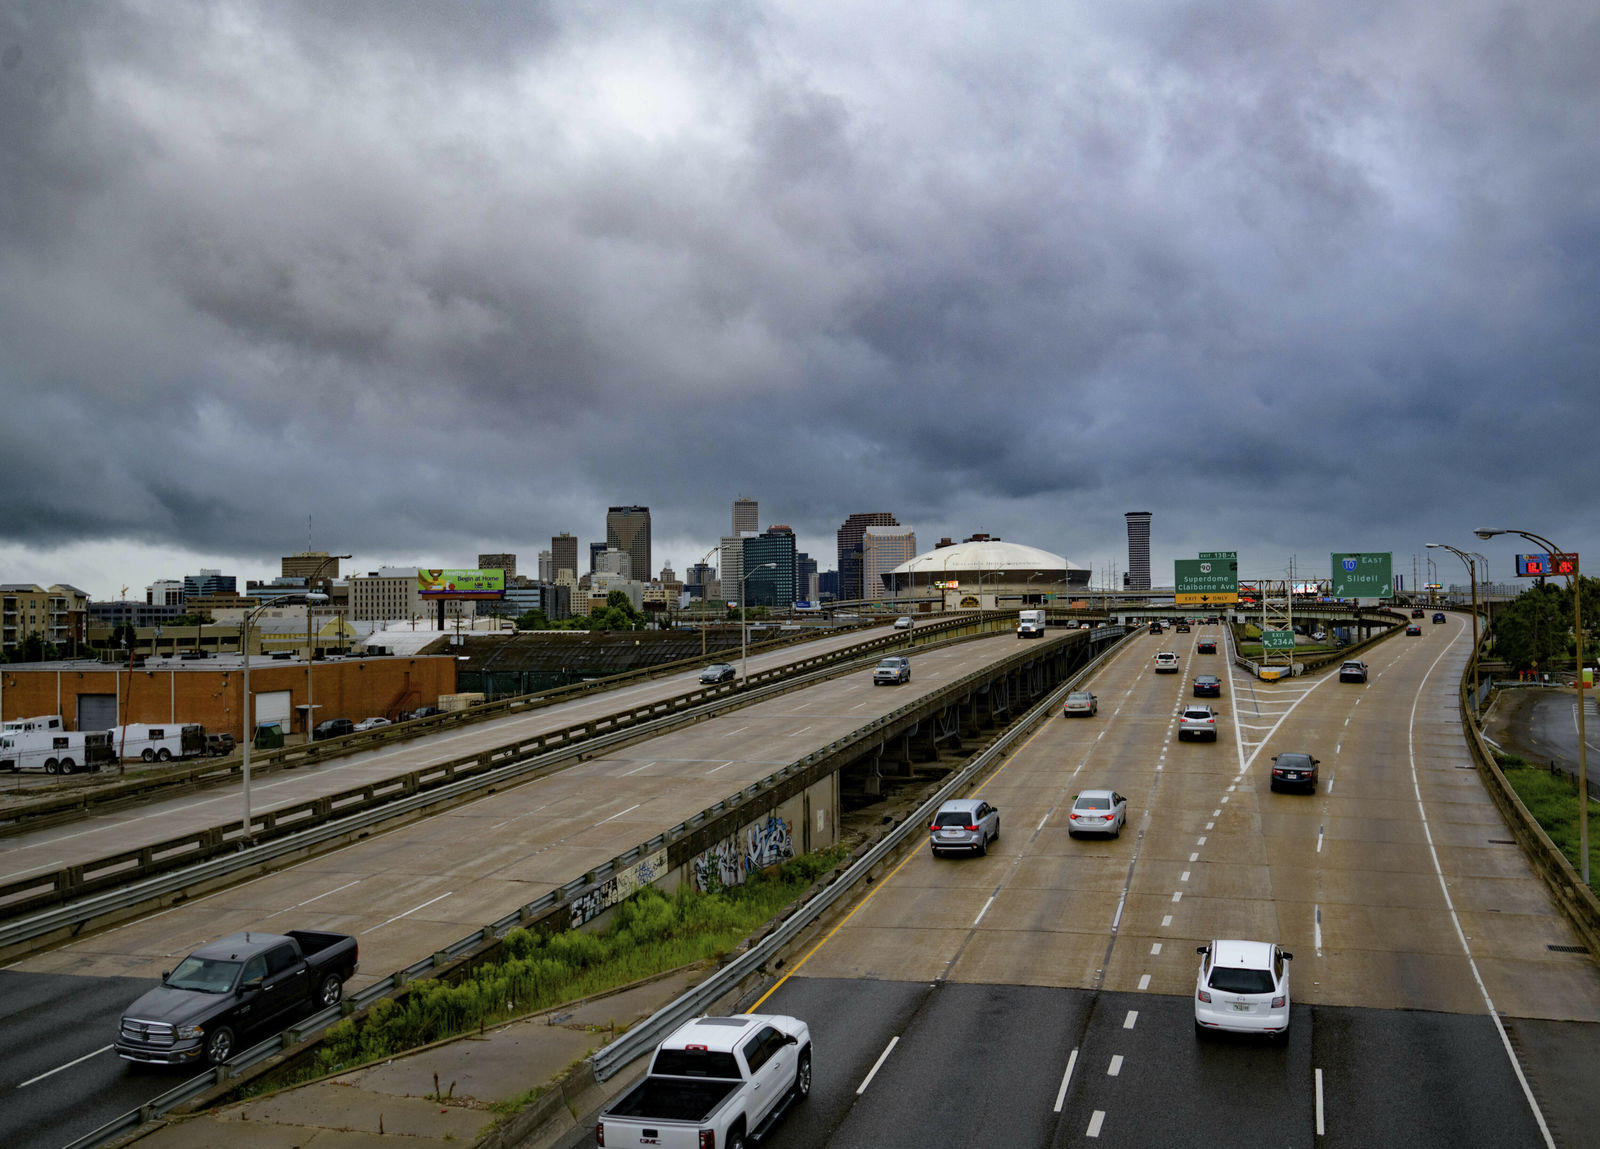 Vehicles make their way on I-10 as bands of rain from Tropical Storm Barry from the Gulf of Mexico move into New Orleans, La., Friday, July 12, 2019. (AP Photo/Matthew Hinton)